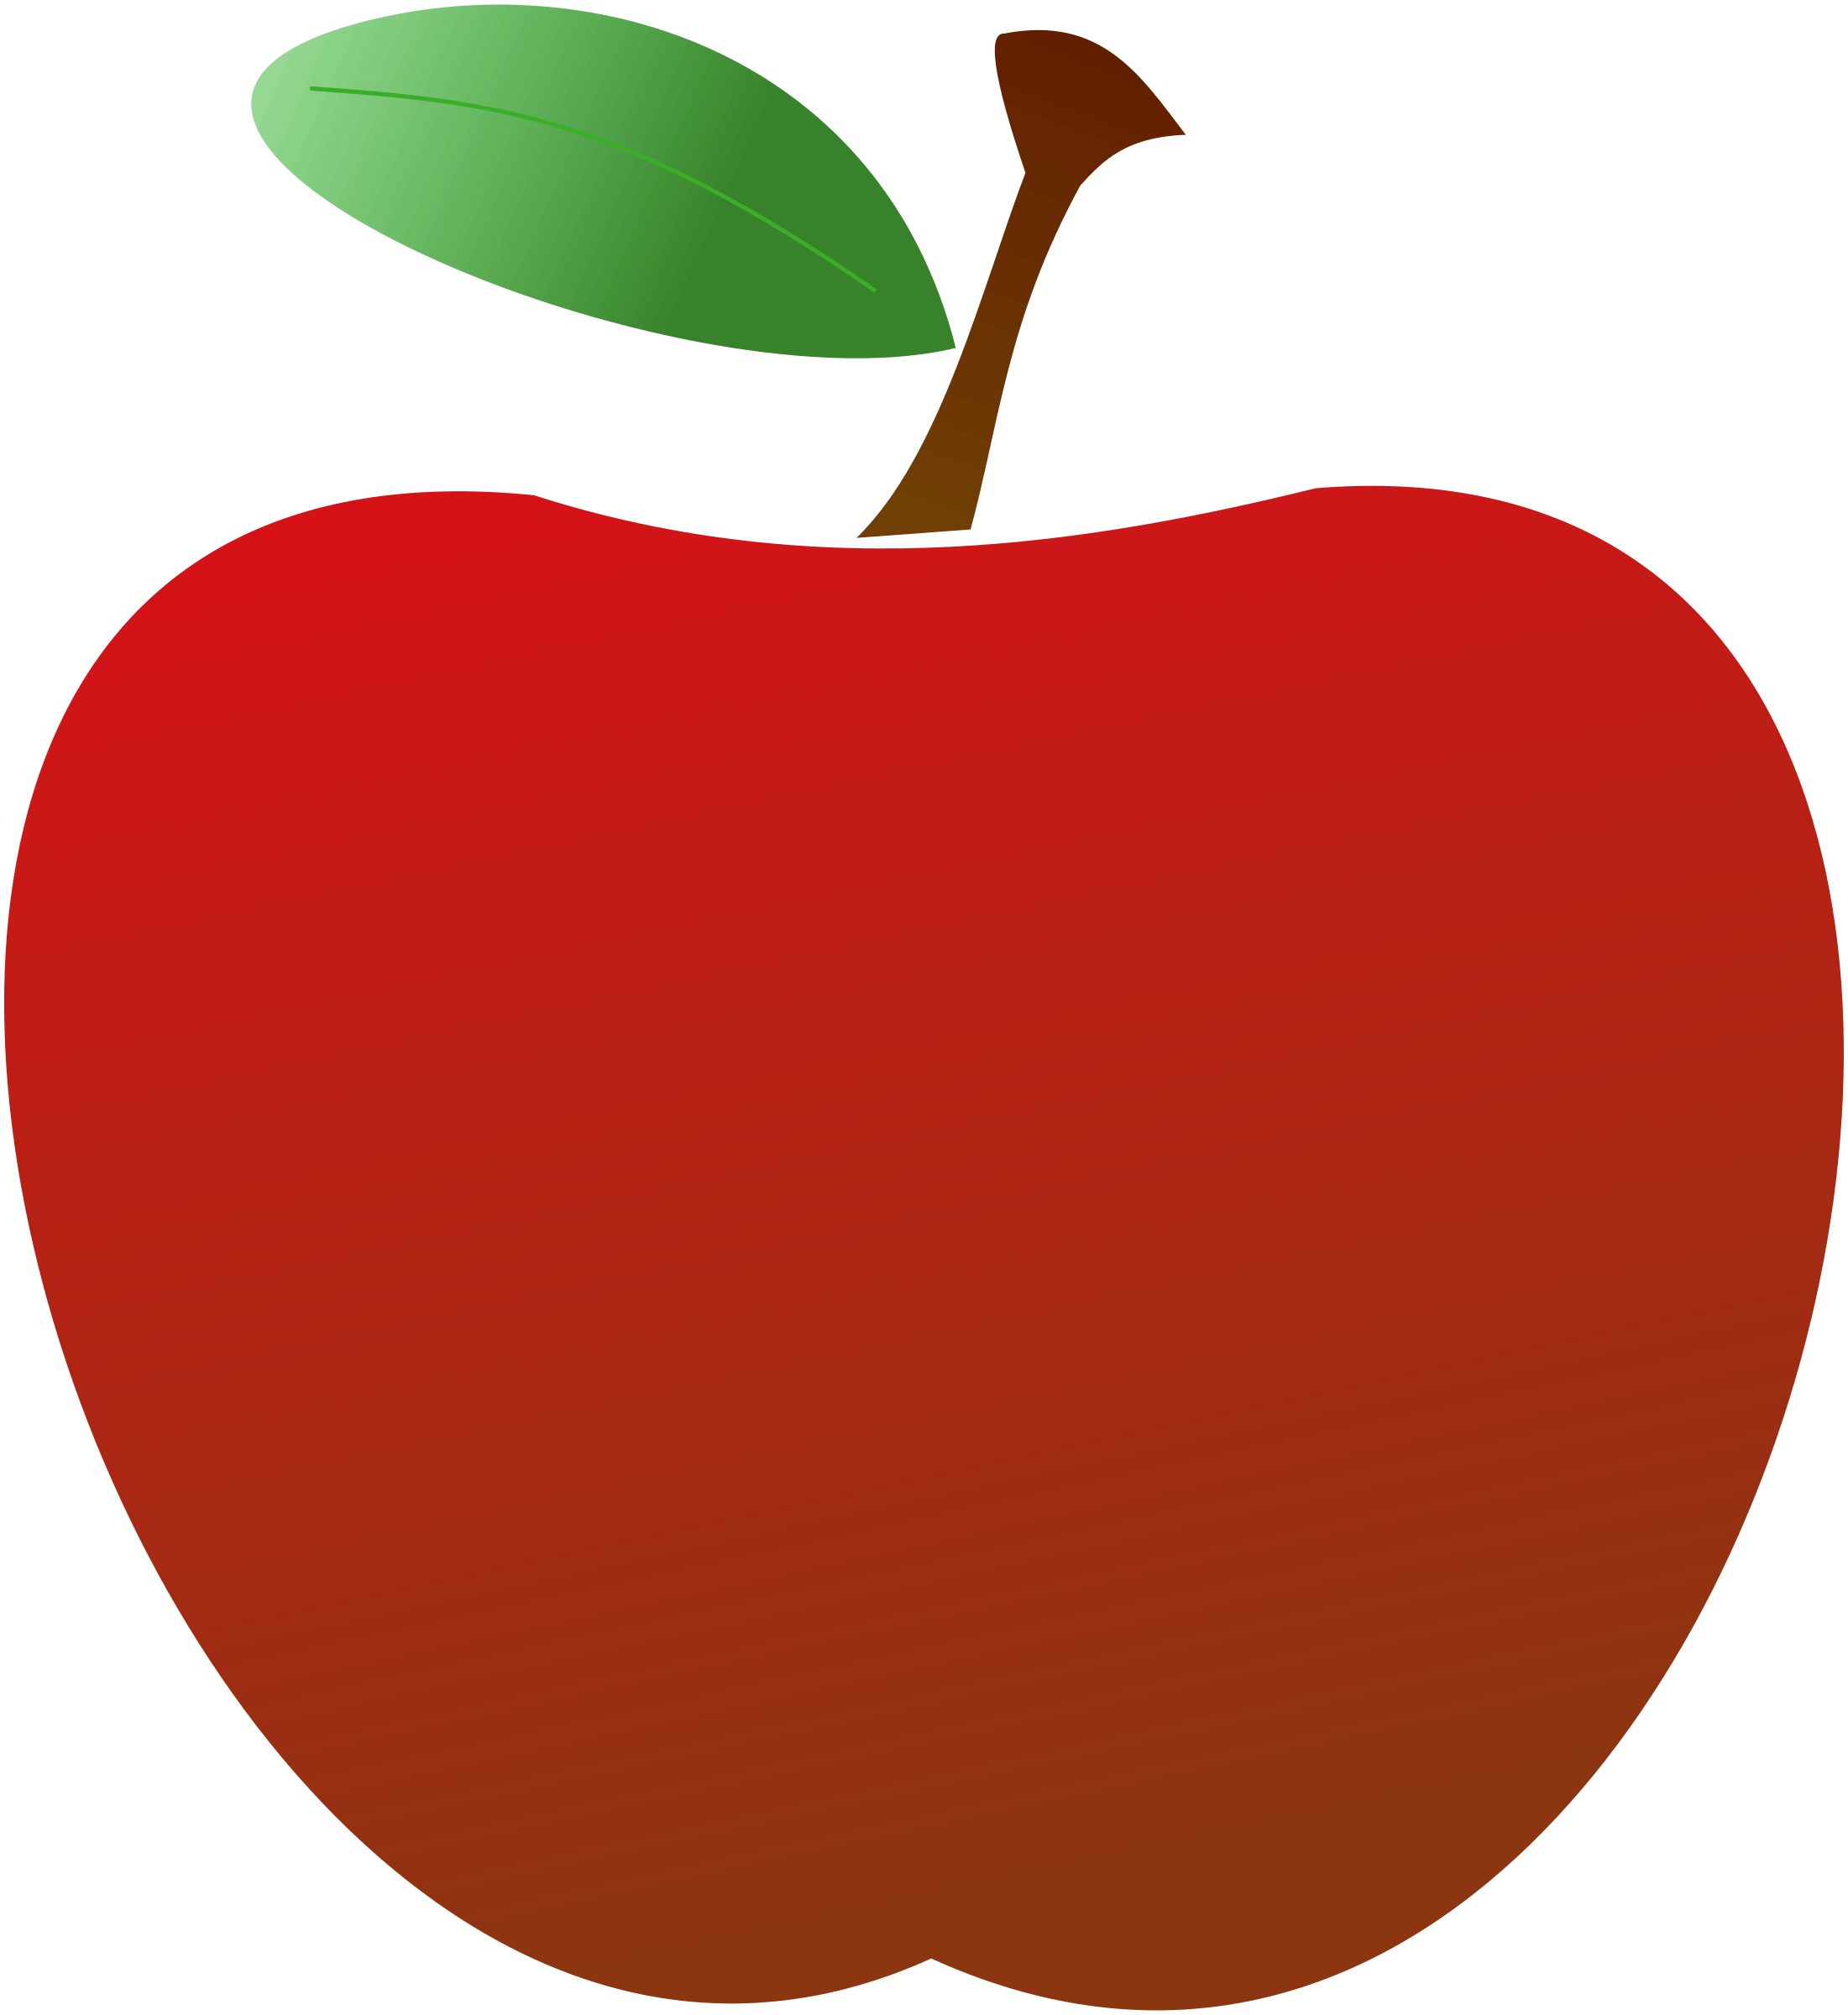 Worm clipart bookwork. Red cliparts zone apple